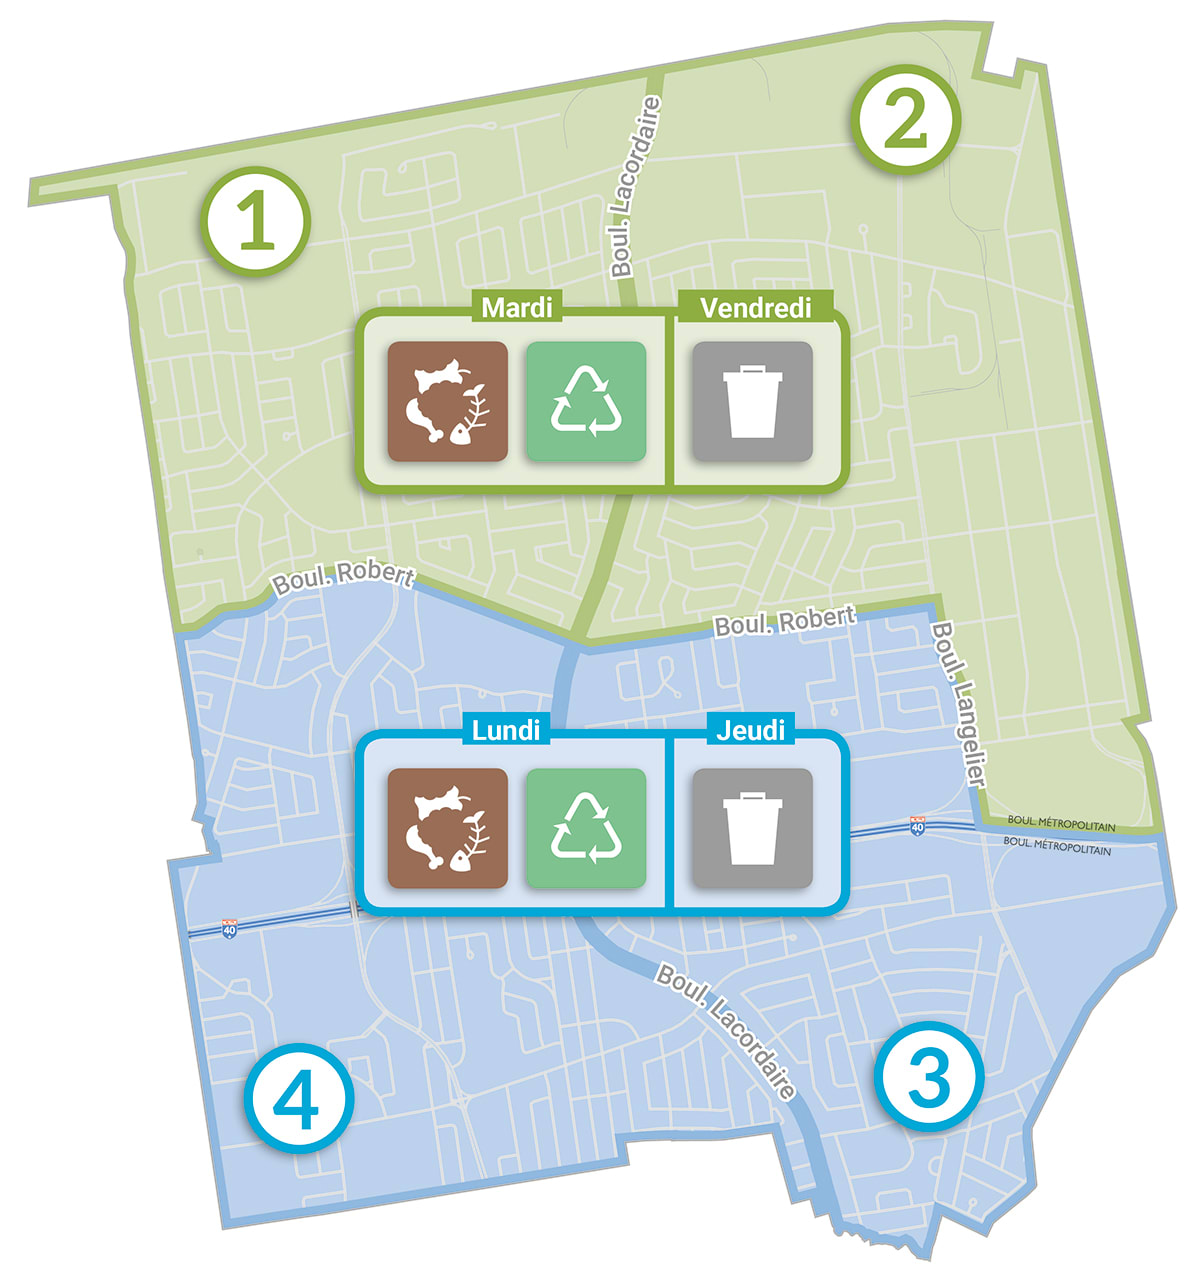 Map divided into 2 zones: a green zone at the top for sectors 1 and 2; a blue zone at the bottom for sectors 3 and 4.